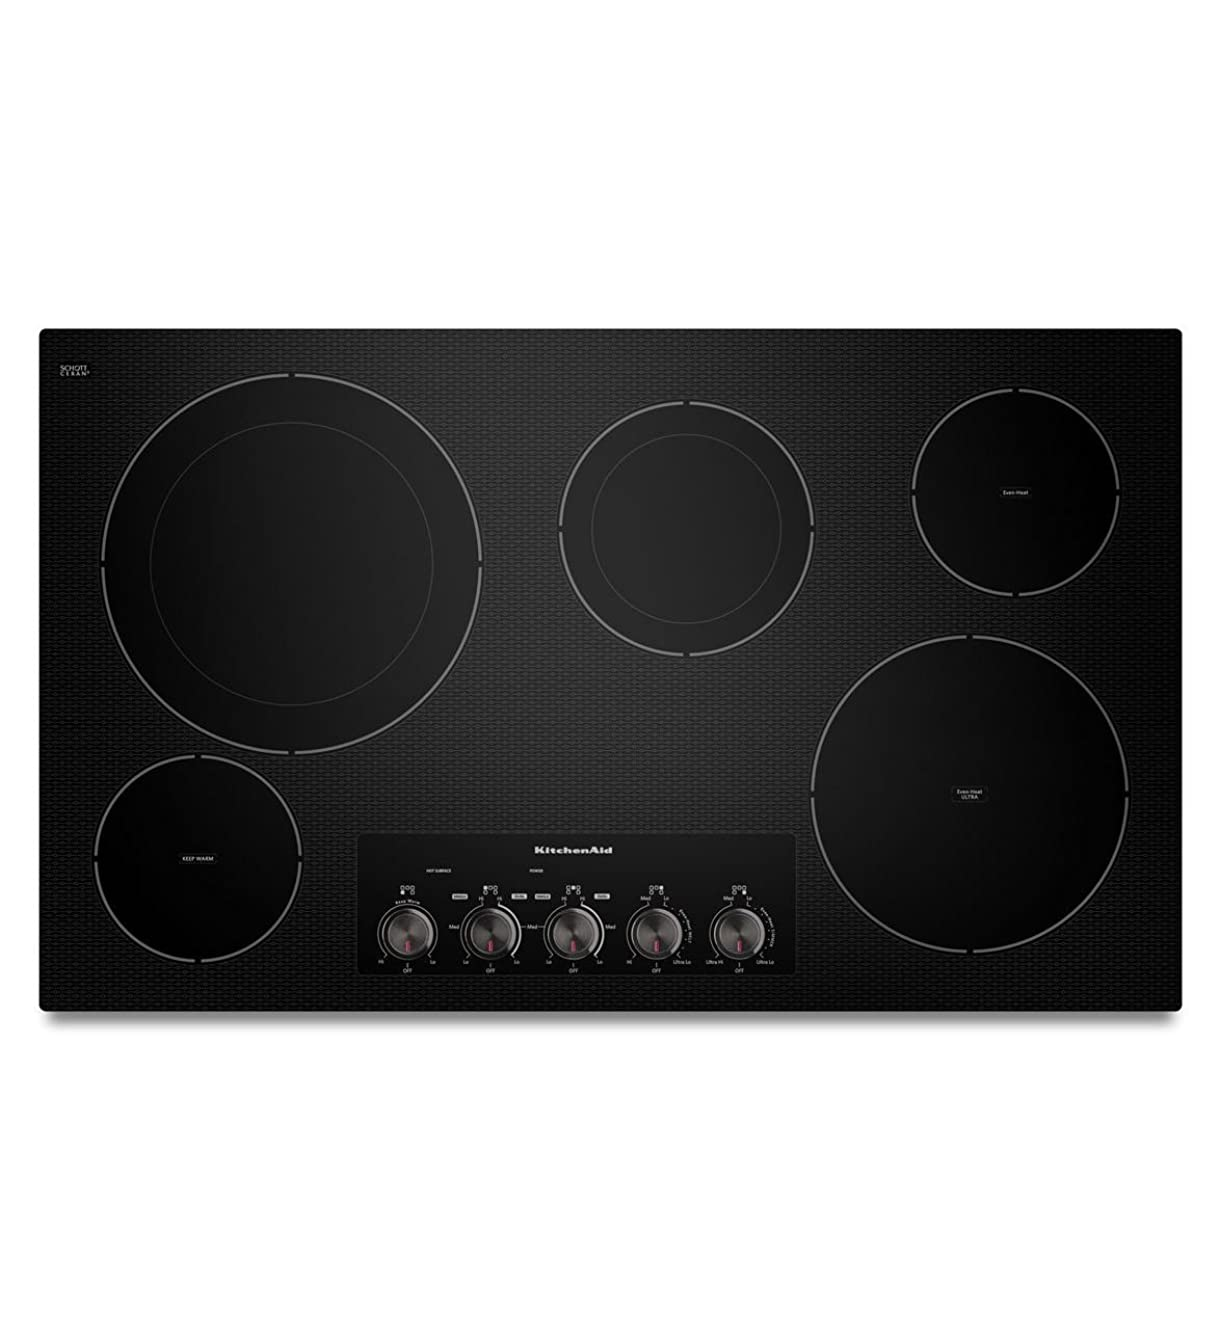 Kitchenaid KECC664BBL: KitchenAid ® 36-Inch, 5-Element Electric Cooktop with Even-Heat Technology - Black